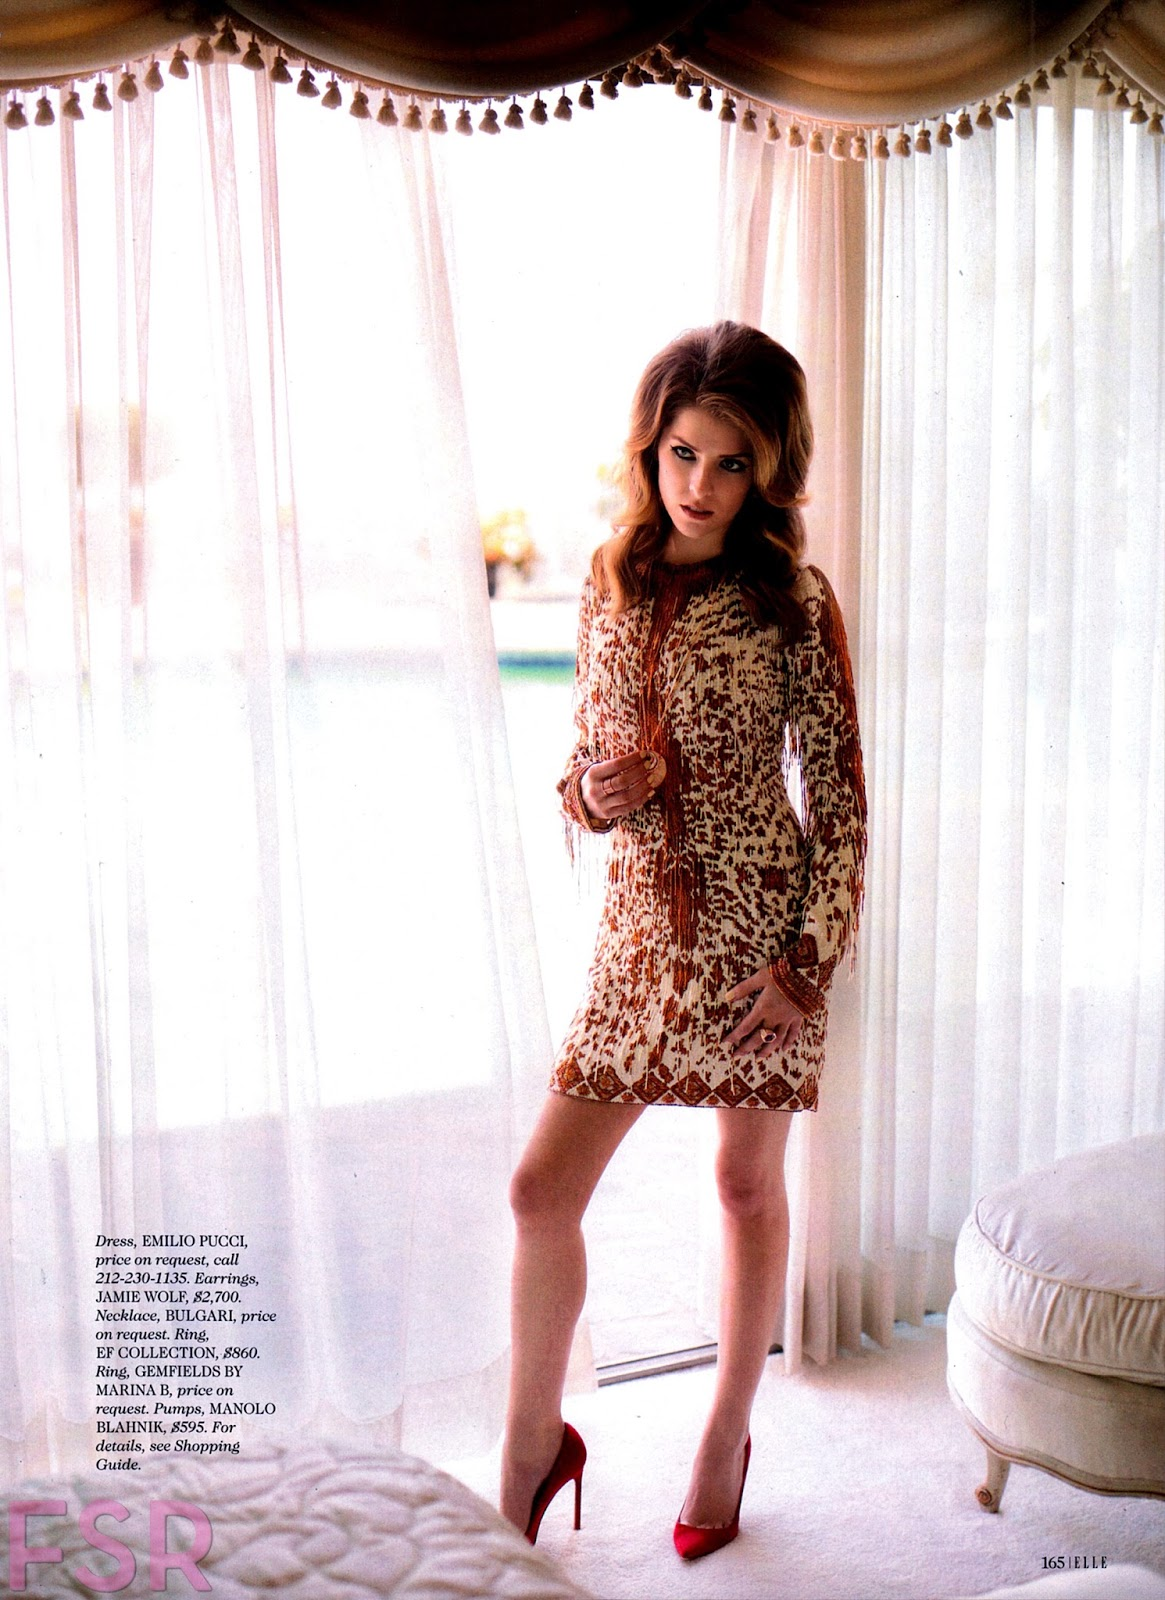 ... - The Charmer Pages : Anna Kendrick For Elle Magazine, July 2014